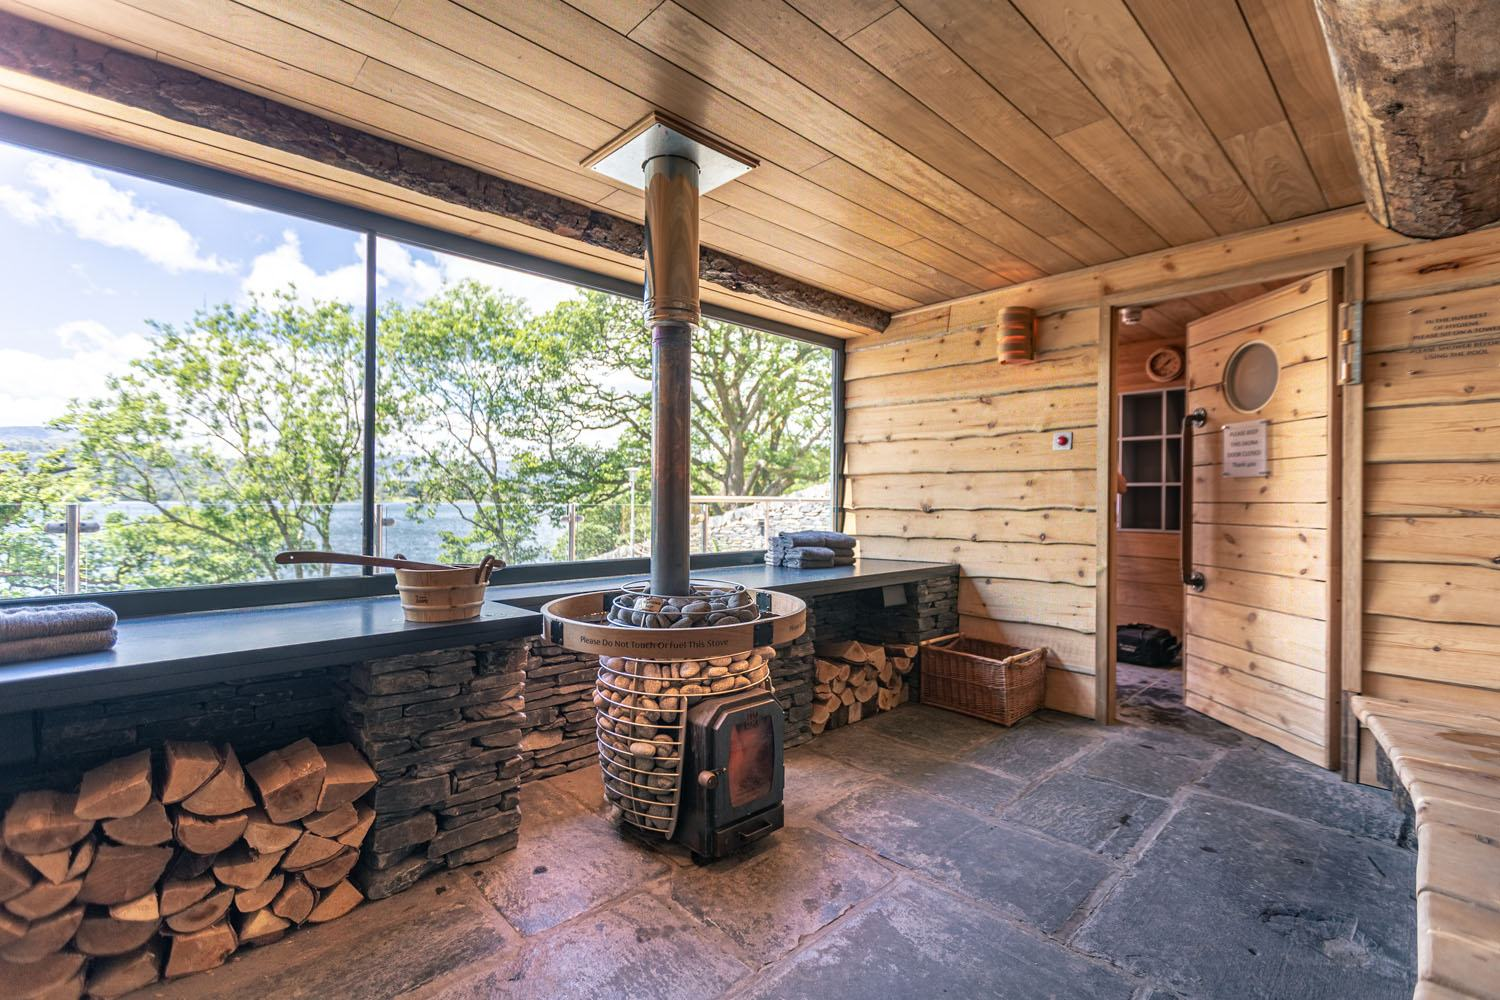 Fellside Sauna | The Spa at Low Wood Bay | Outdoor Spa